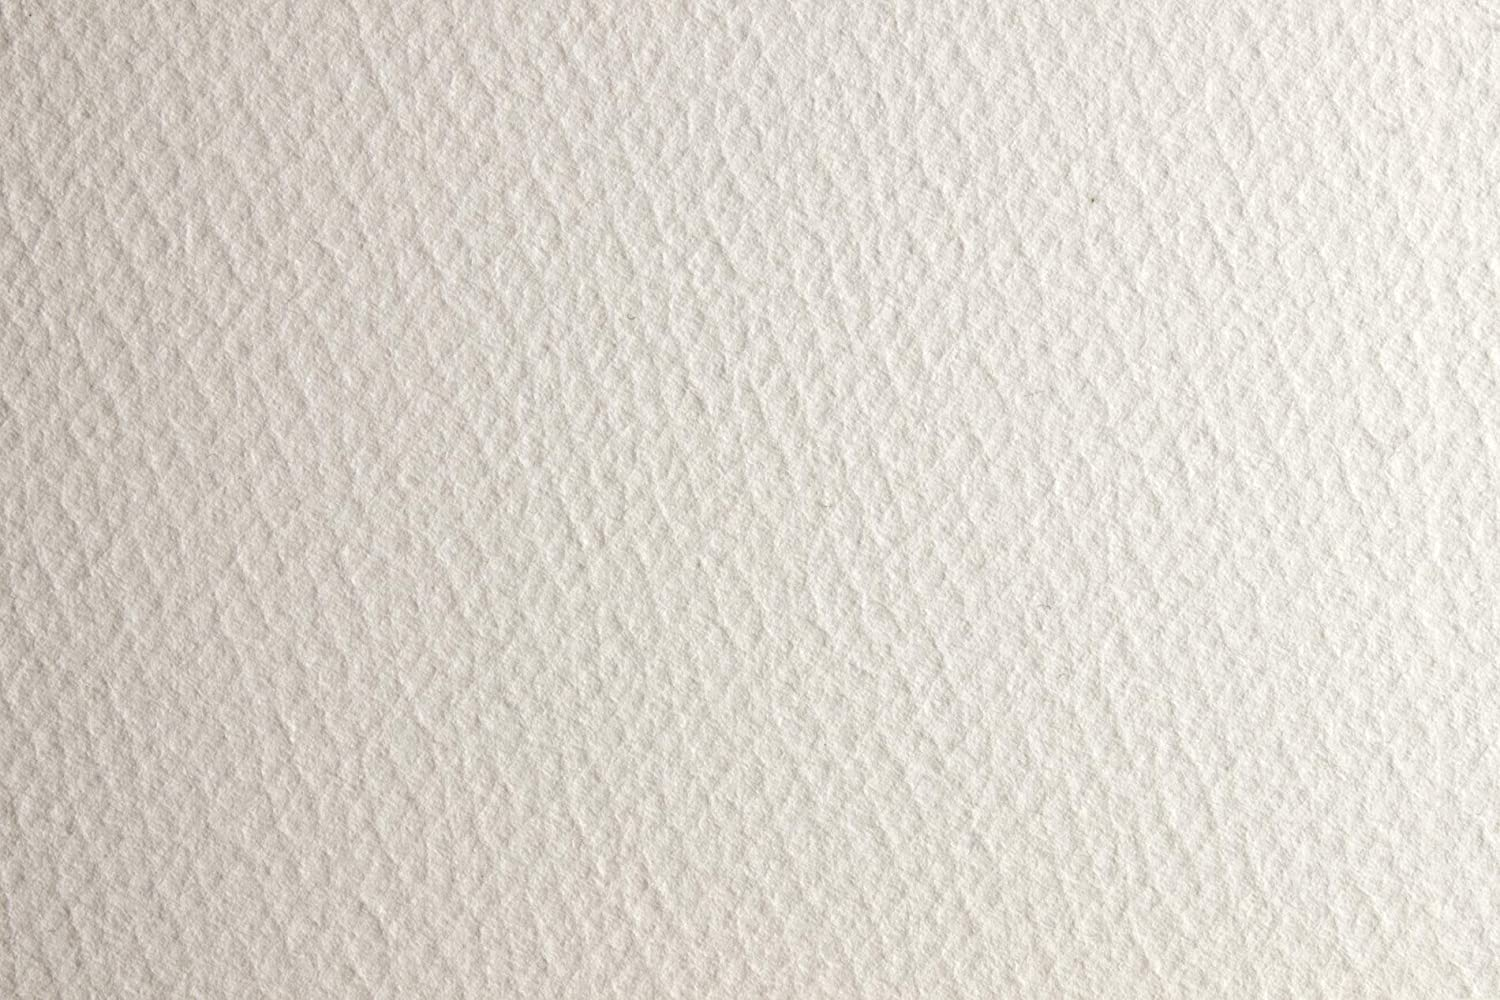 Fabriano Artistico Watercolour Paper Rolls - Traditional White 300gsm NOT